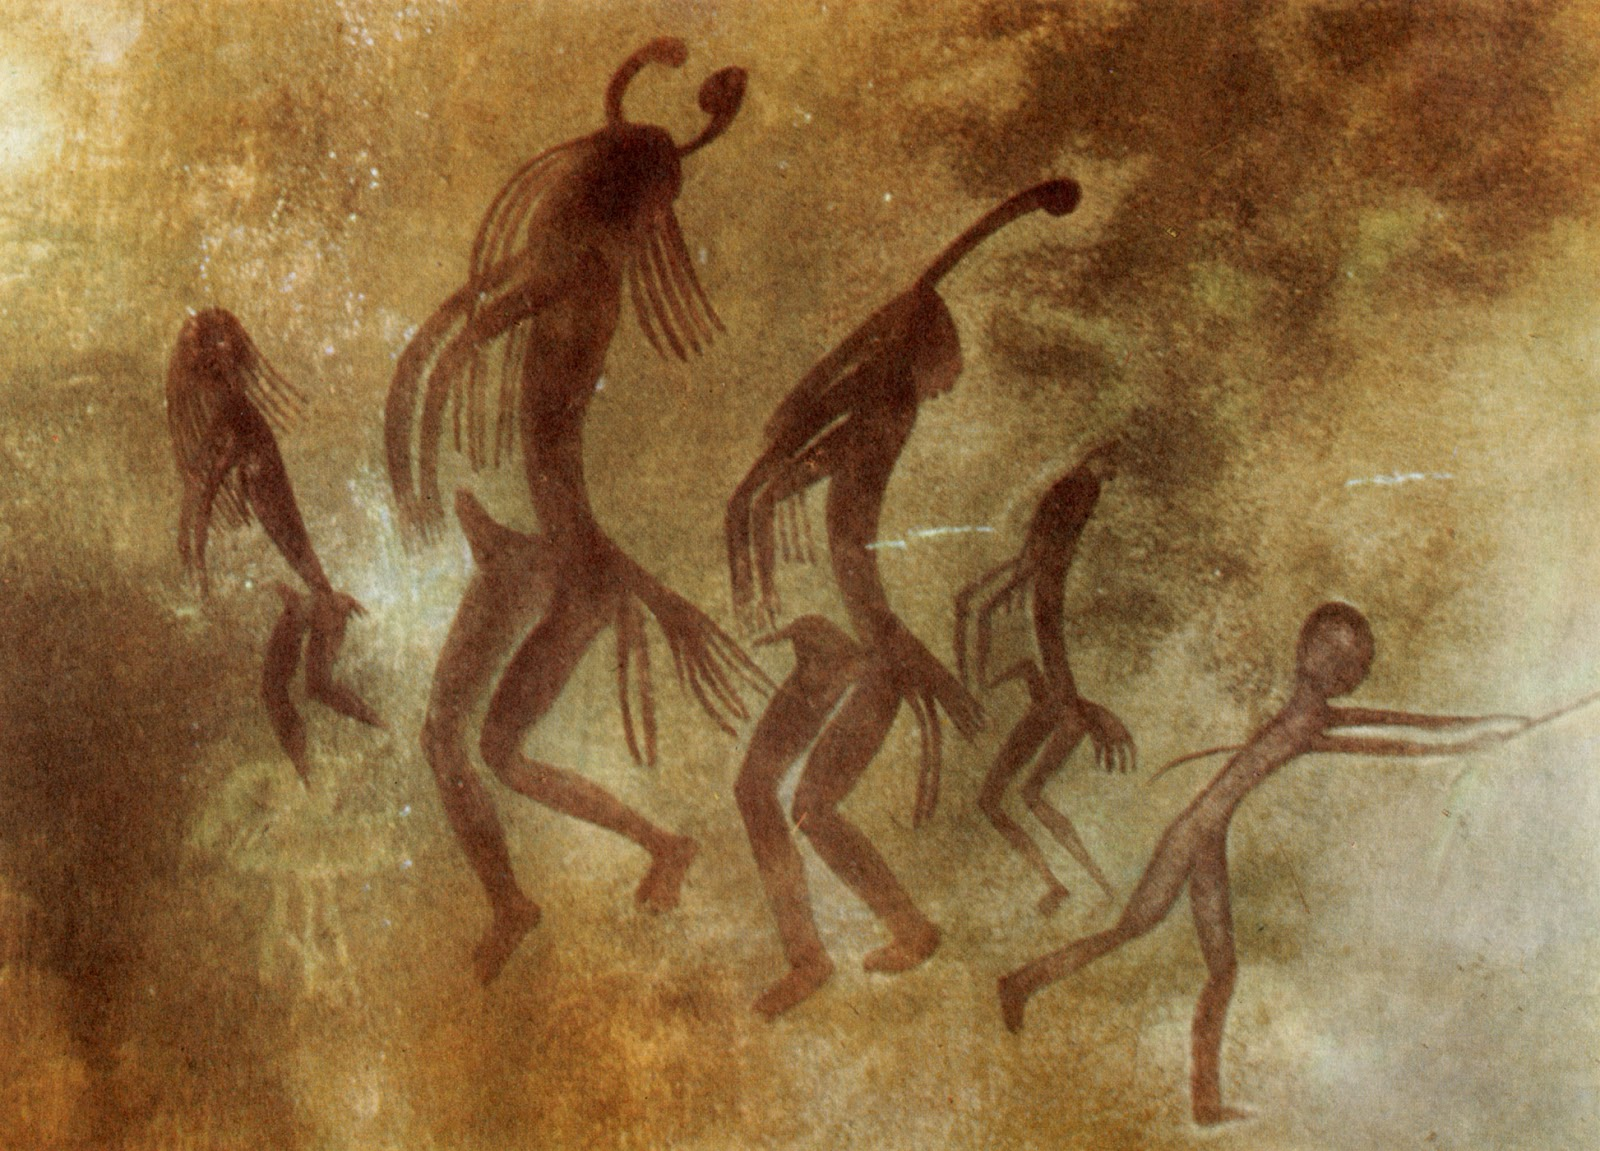 chair dance ritual song antique corner chaudron prehistoric rock paintings of libyan and